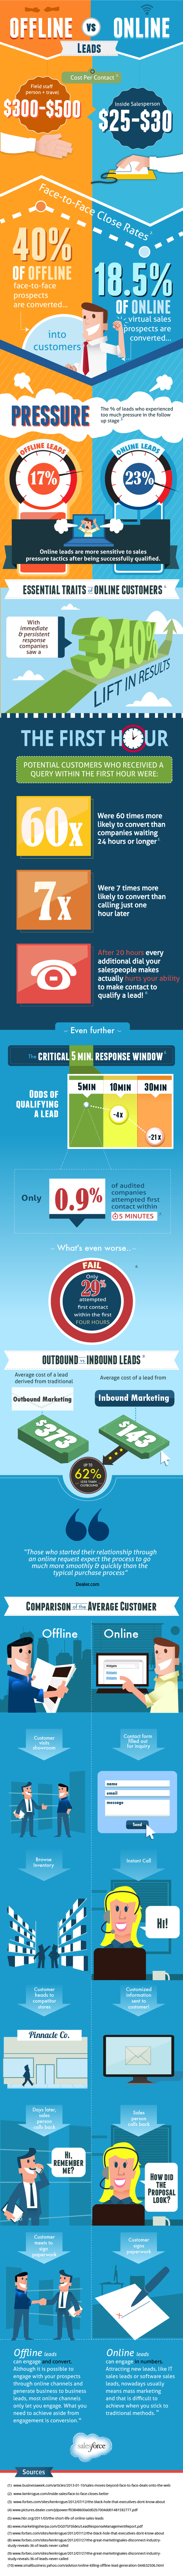 The Differences Between Online, Offline Leads and How Each Impacts Lead Conversions